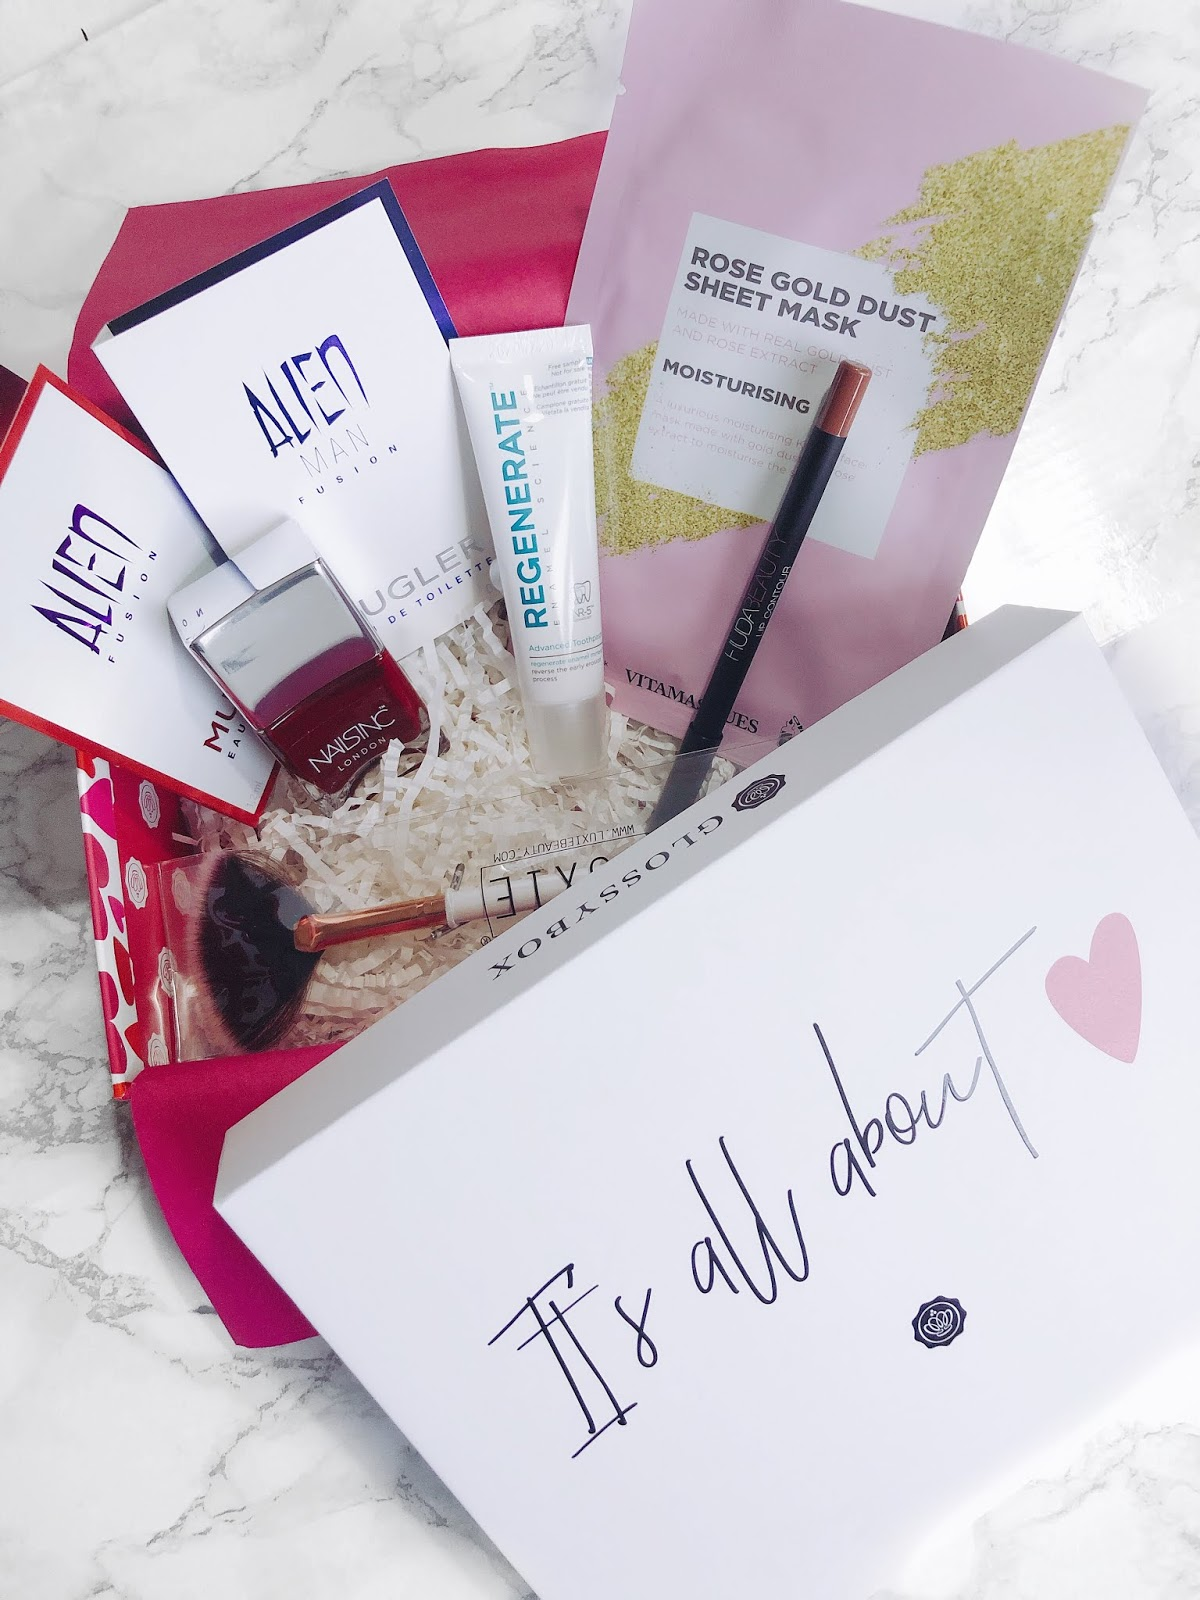 glossybox, nails inc, luxie beauty, mugler, vitamasques, regenerate toothpaste